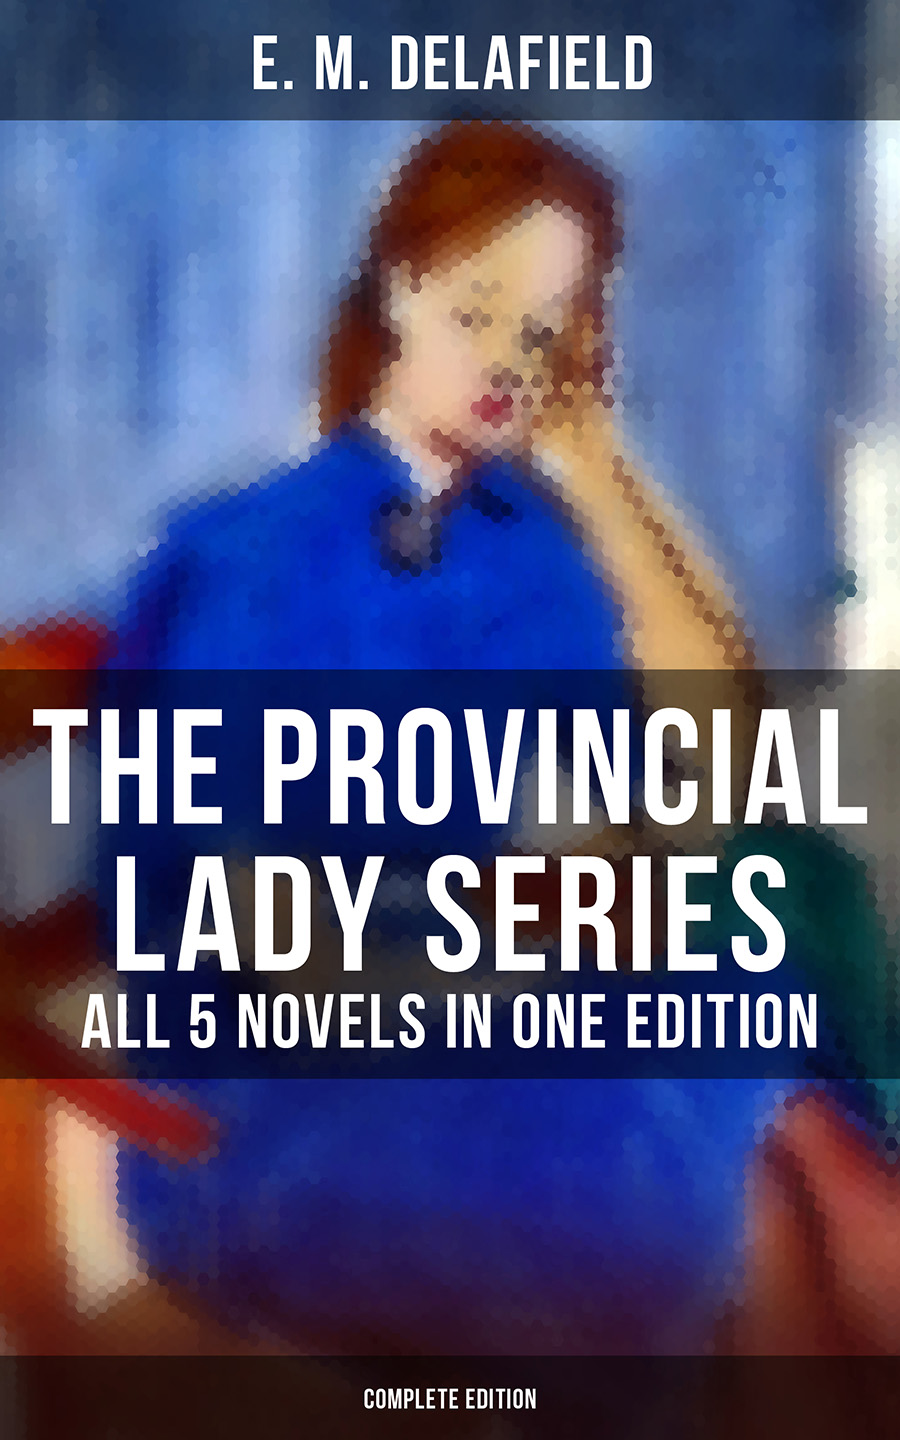 E. M. Delafield THE PROVINCIAL LADY SERIES - All 5 Novels in One Edition (Complete Edition) carolyn wells the complete patty series all 14 children s classics in one volume